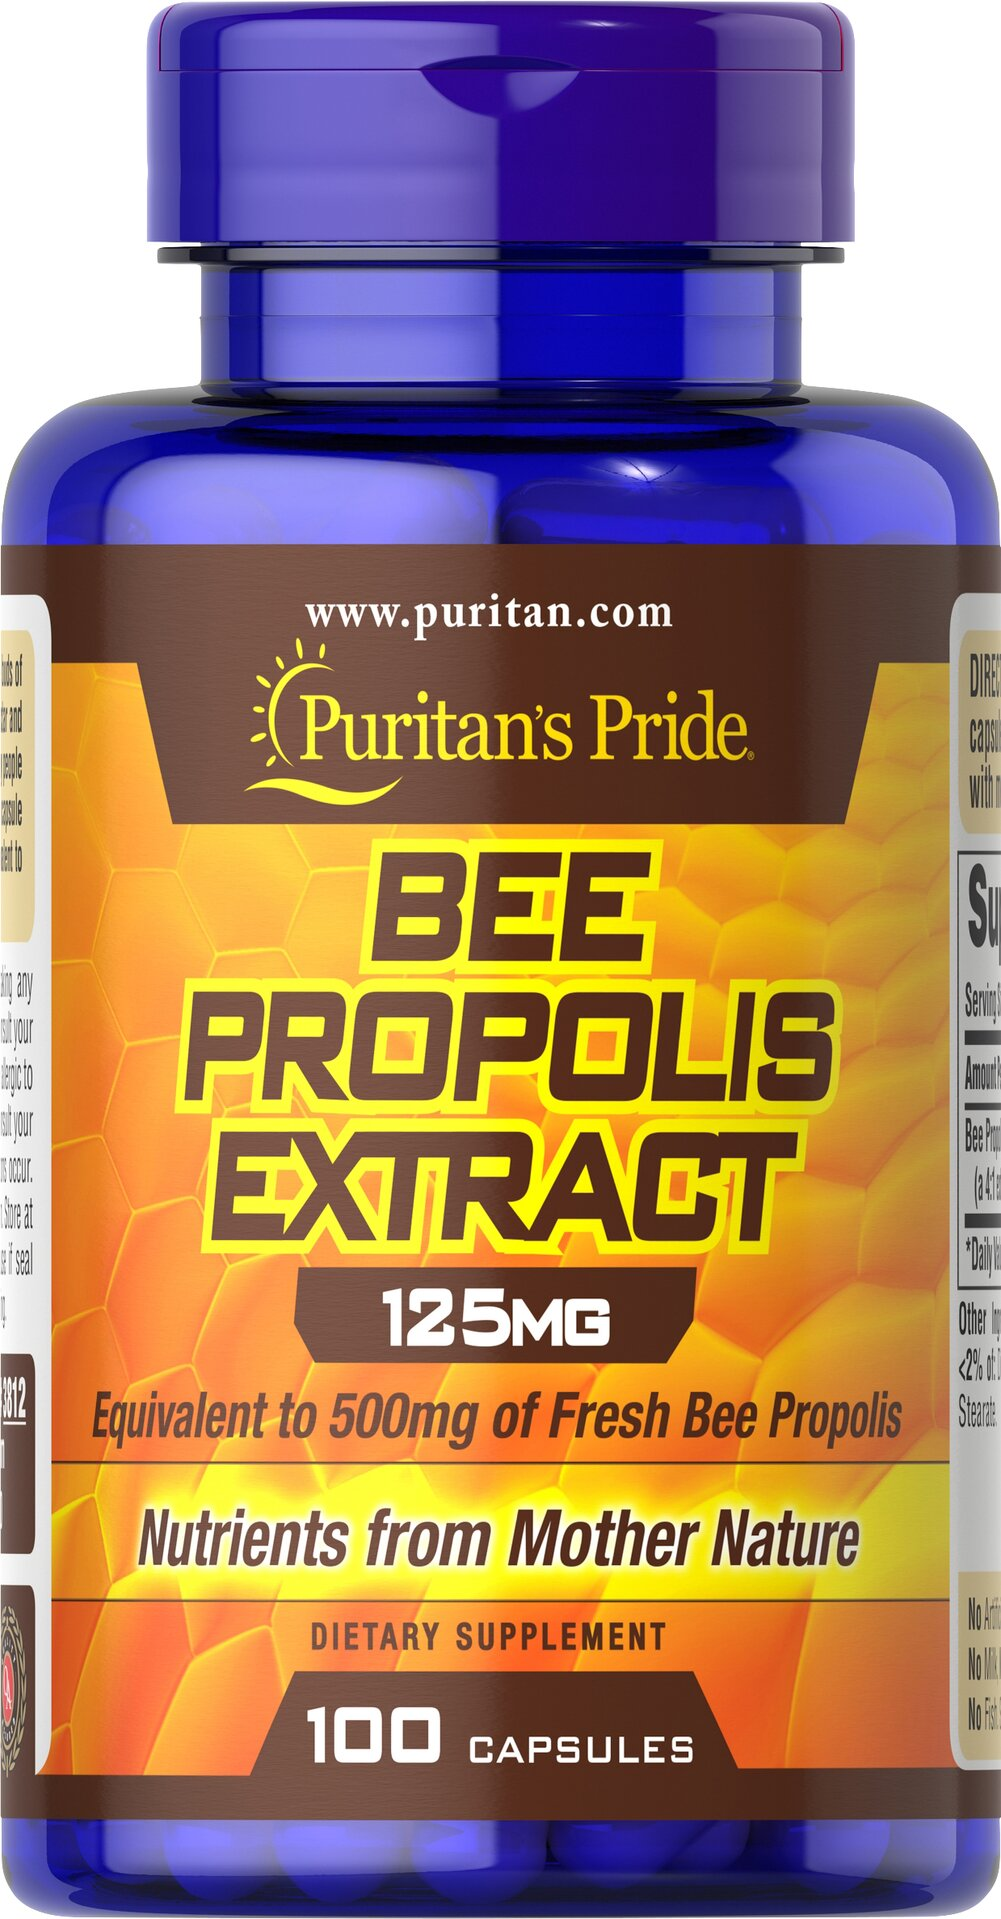 Bee Propolis 500 mg <p>Once again, the amazing Bee has provided us with a beneficial natural food supplement rich in flavonoids, amino acids, vitamins and minerals.  Puritan's Pride offers you high quality natural Bee Propolis at incredible savings.</p> 100 Capsules 500 mg $11.19